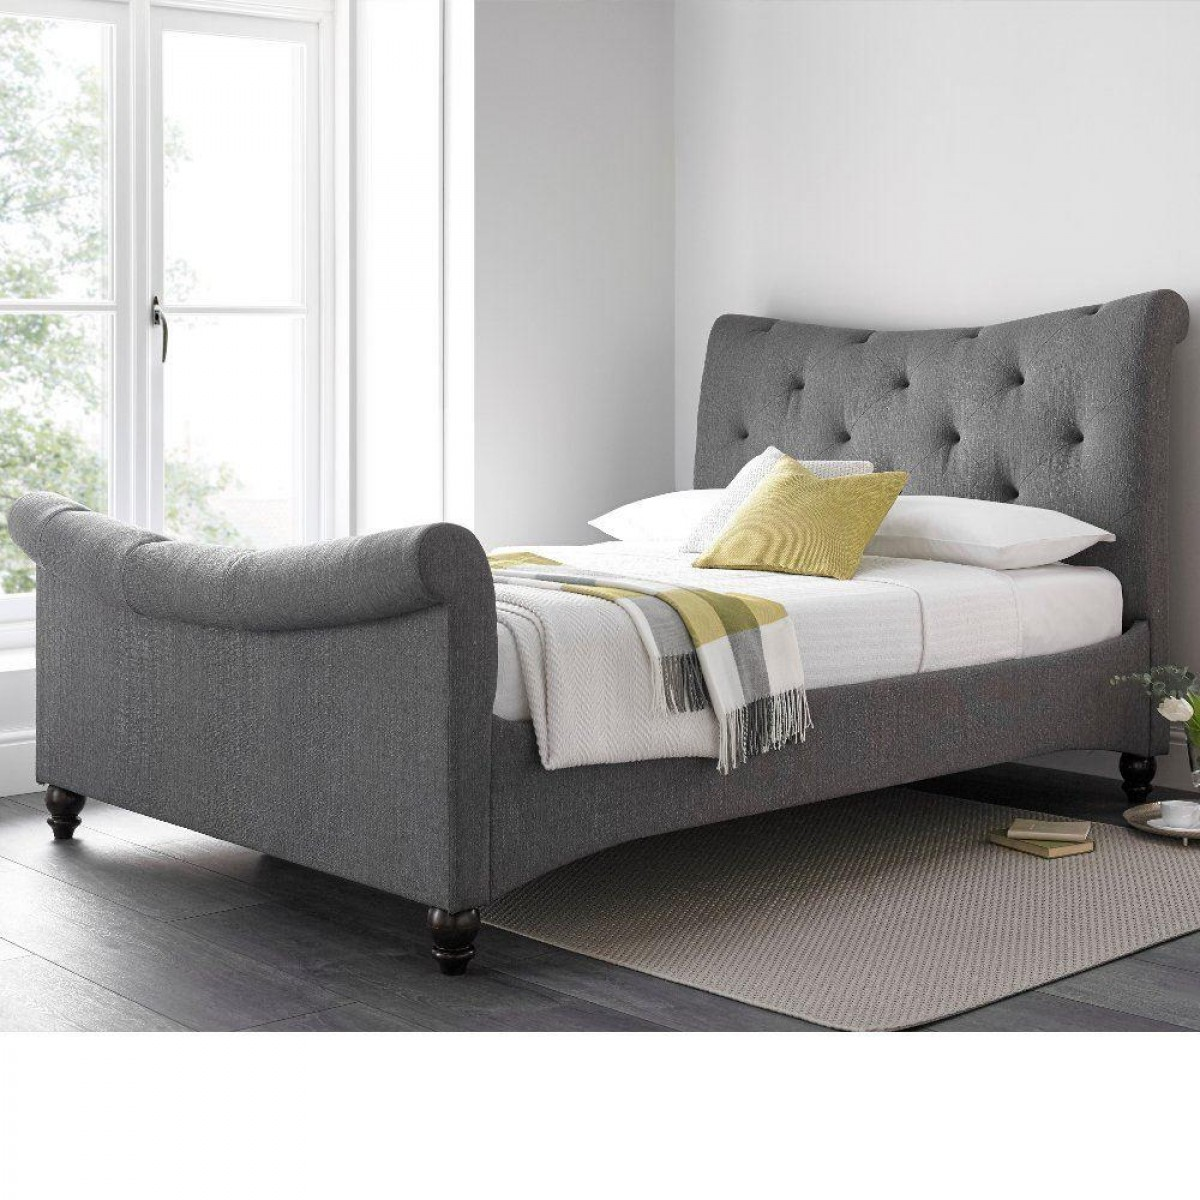 Tyne Grey Fabric Sleigh Bed